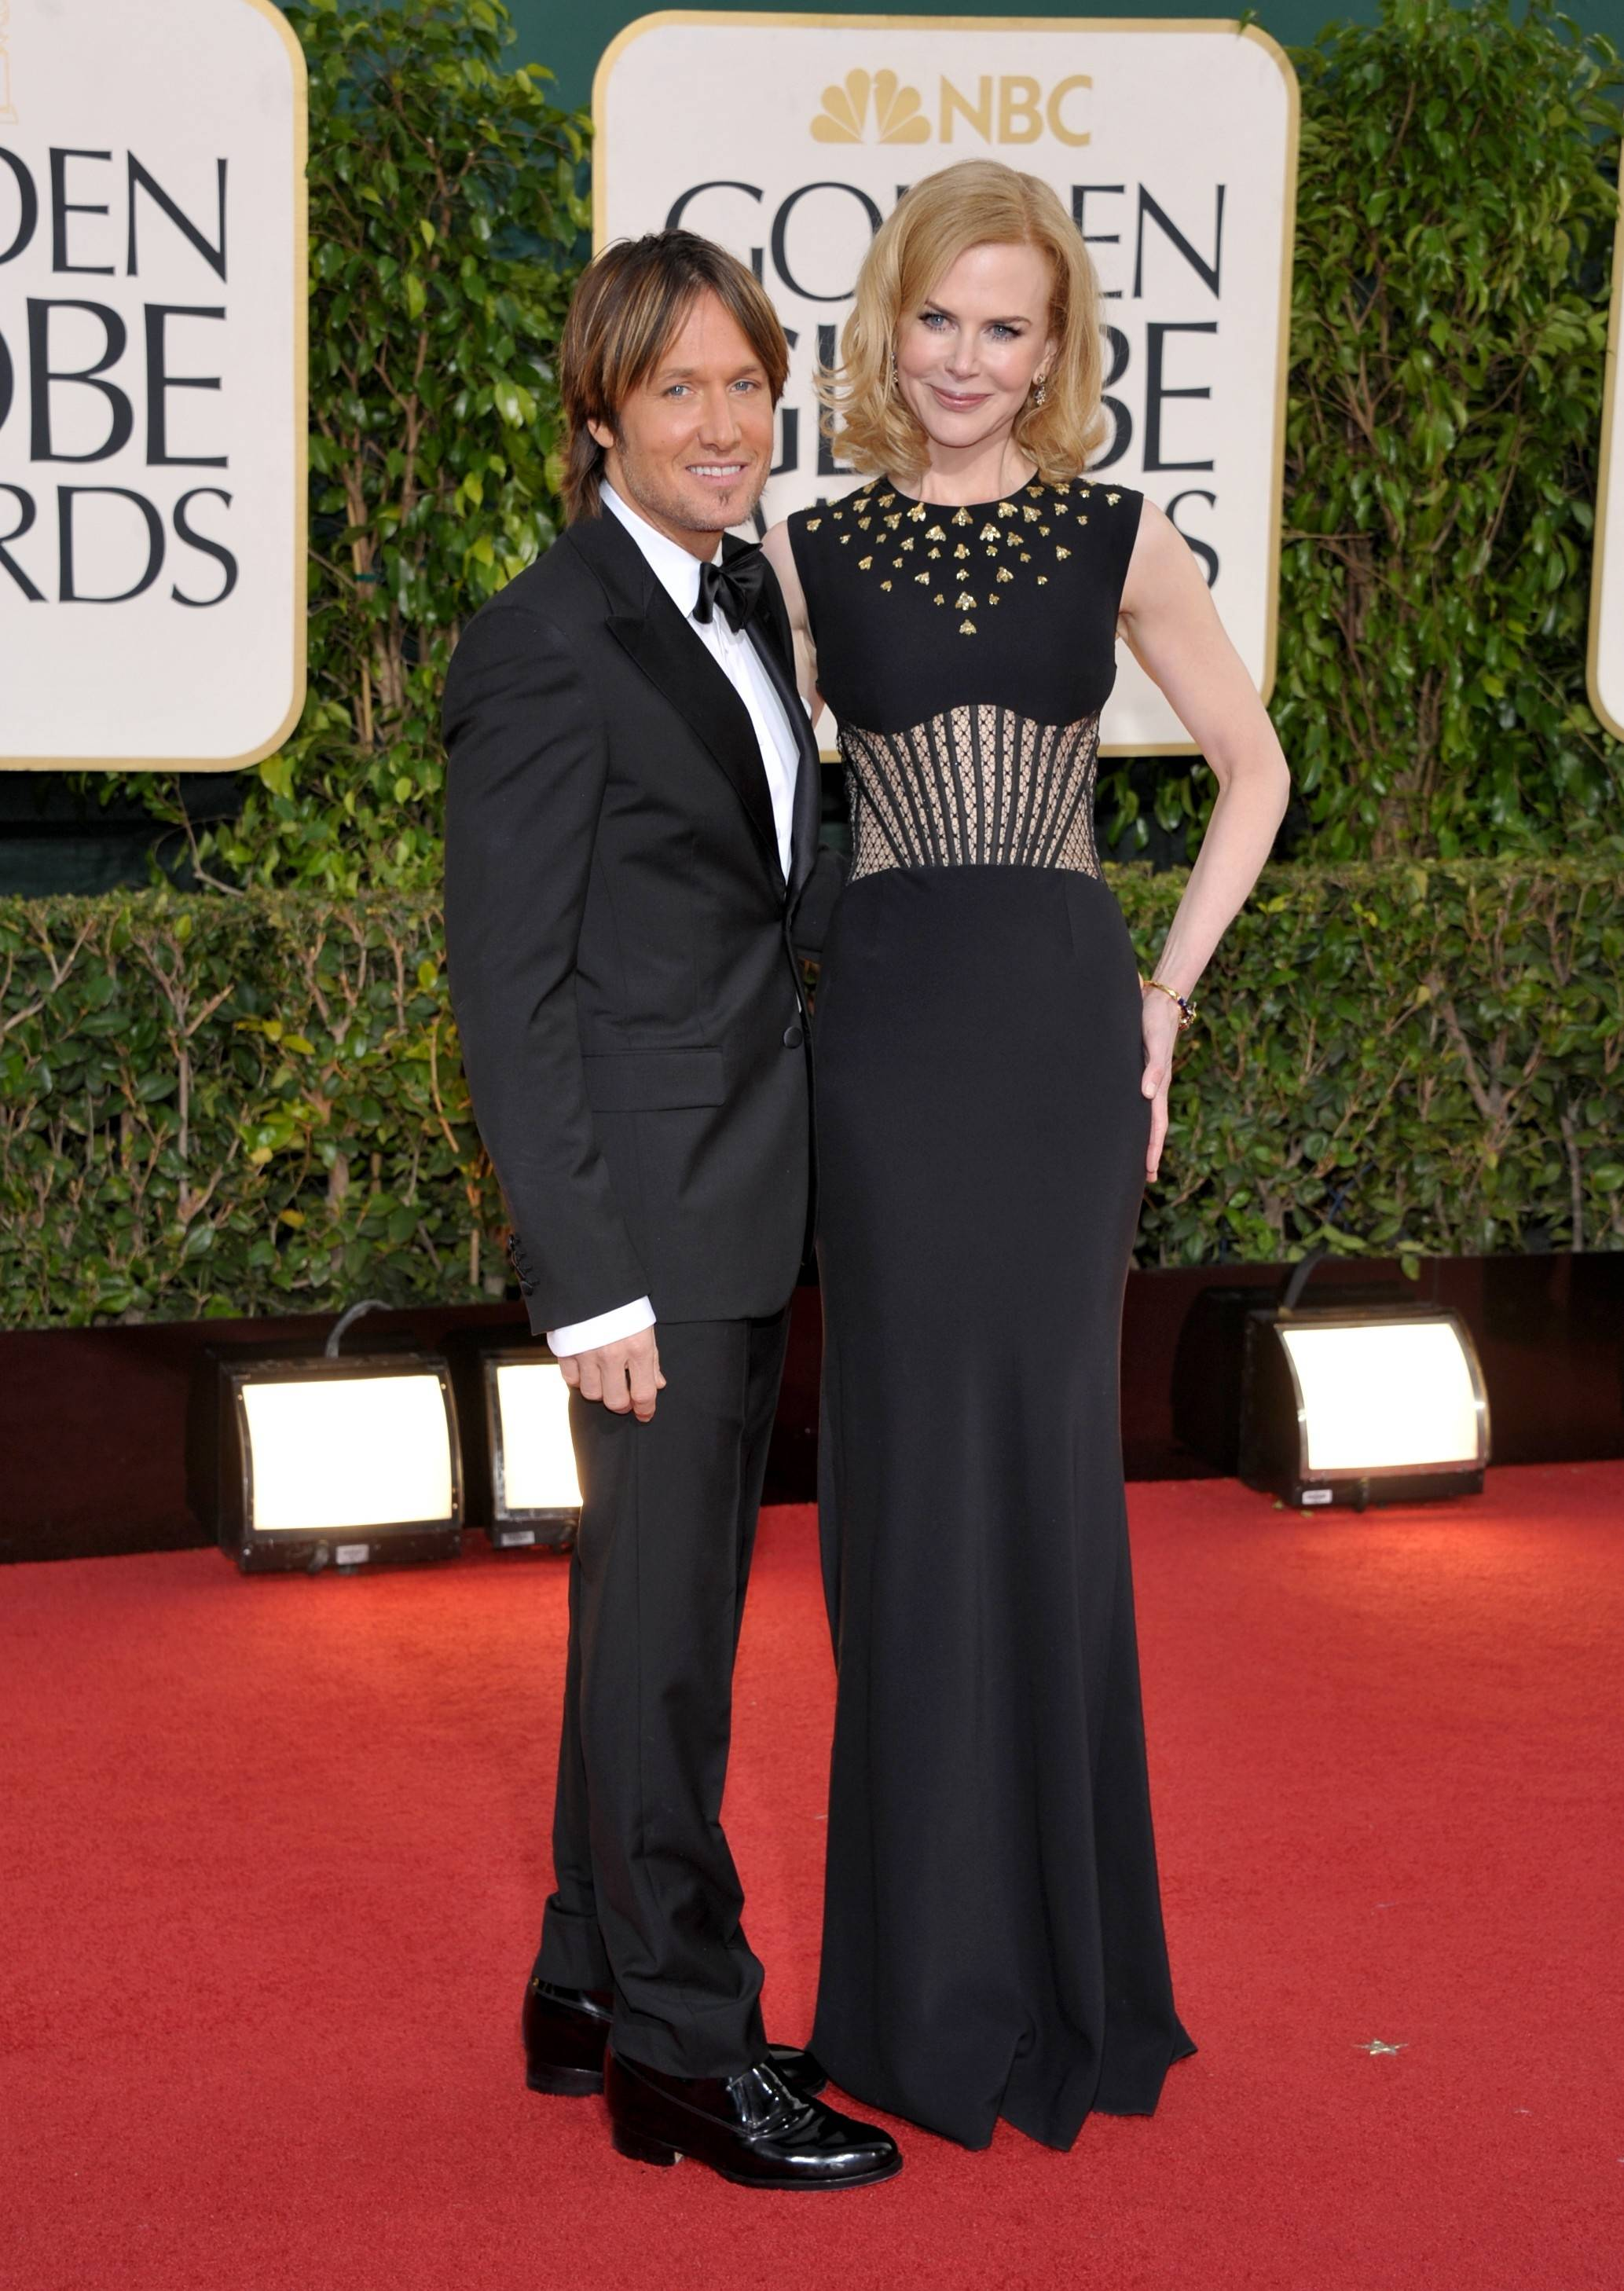 """X Factor"" host Keith Urban and his wife, actress Nicole Kidman, stay close on the red carpet"